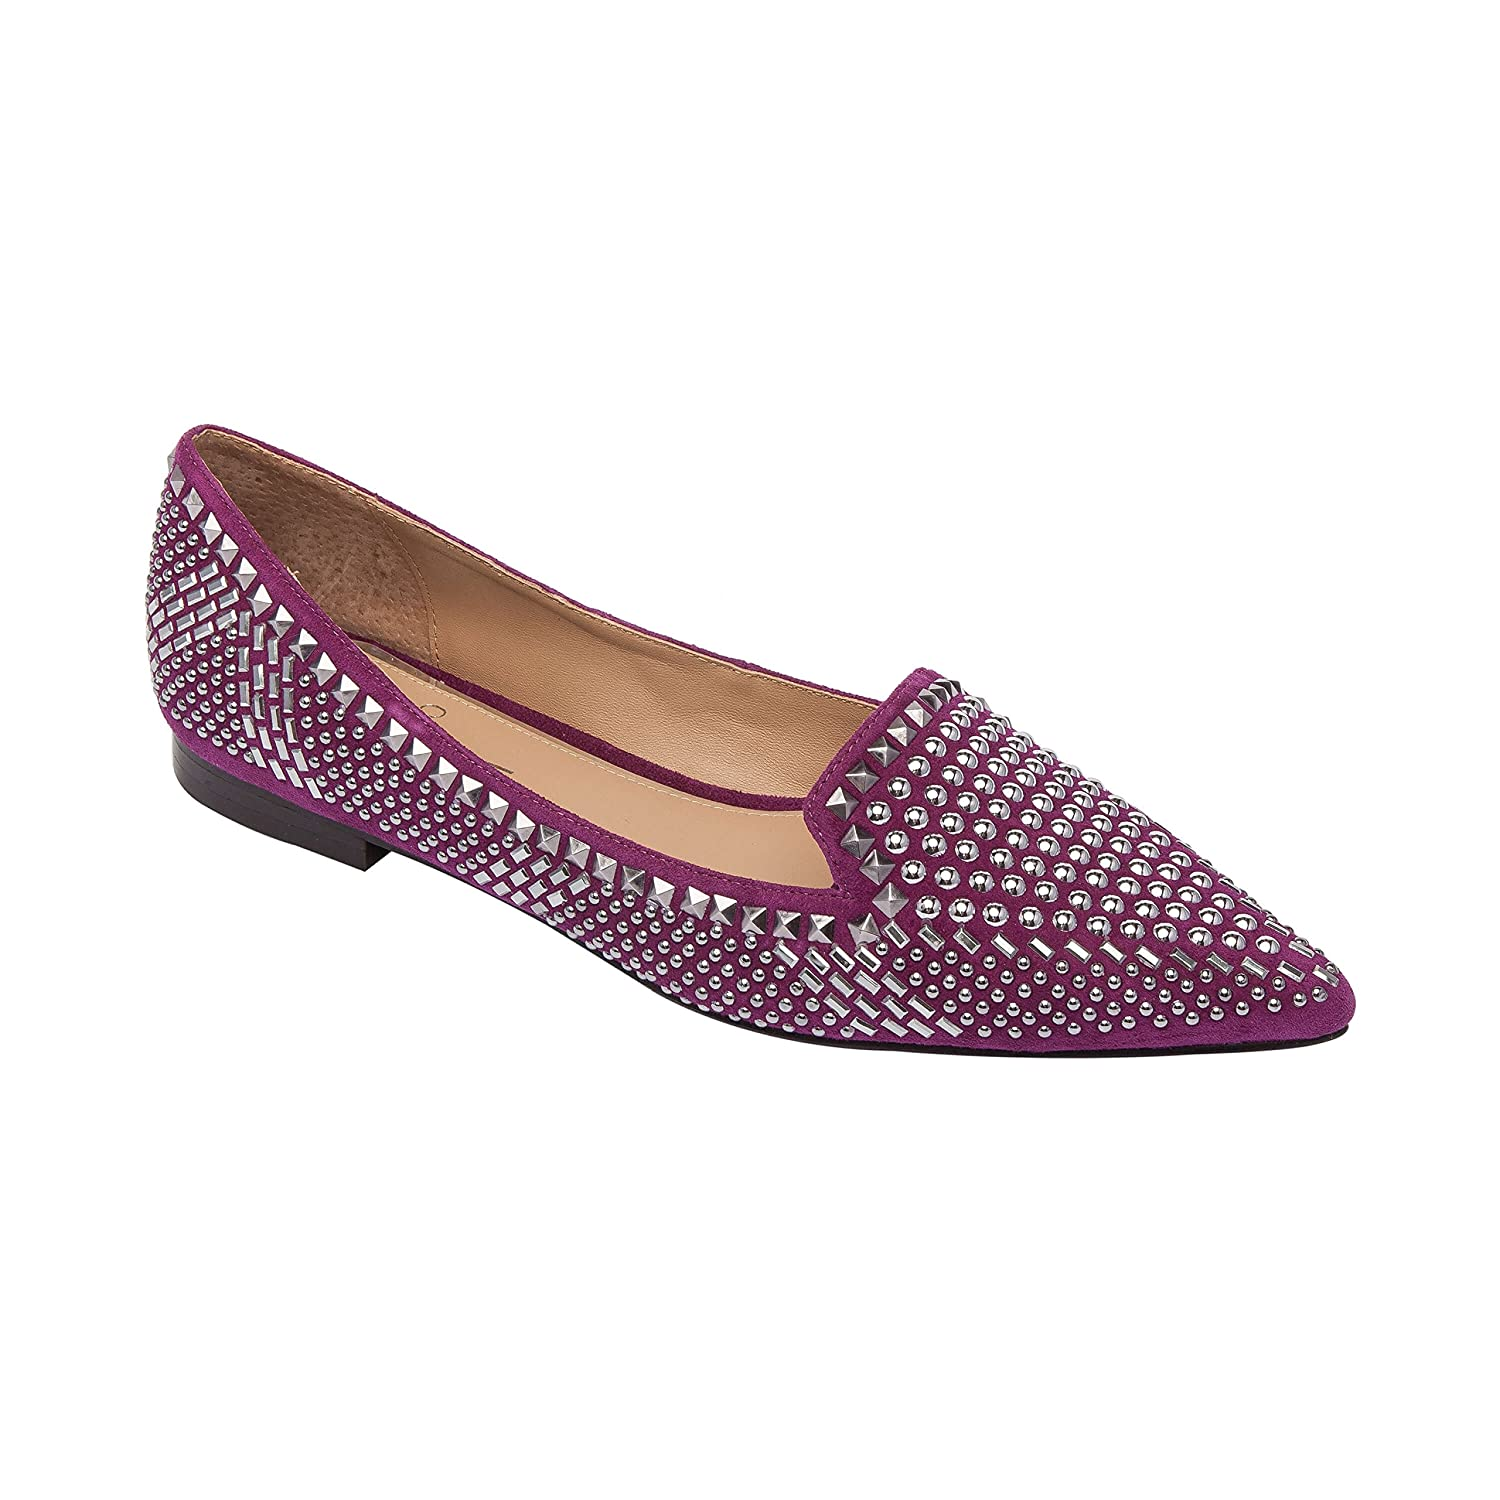 Linea Paolo Portia | Stud Adorned Suede Slip-On Moc Slipper Comfortable Flat (New Fall) B07DM9YZDT 10 M US|Purple Suede